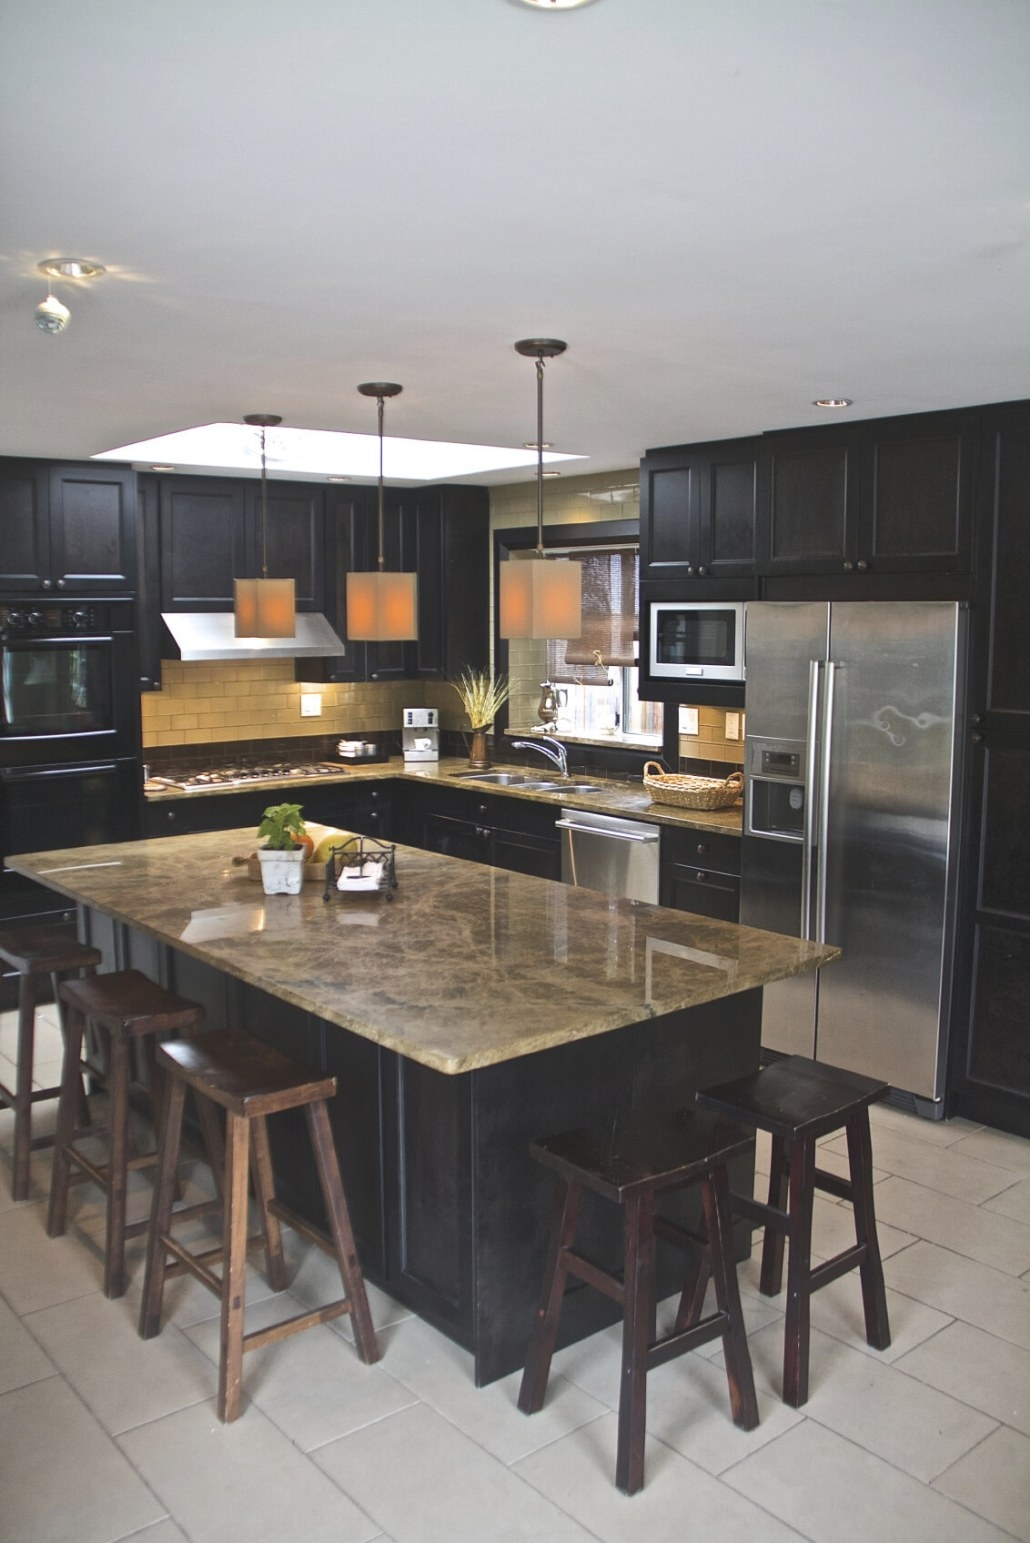 52 Dark Kitchens With Dark Wood And Black Kitchen Cabinets inside Black Kitchen Cabinets Small Kitchen